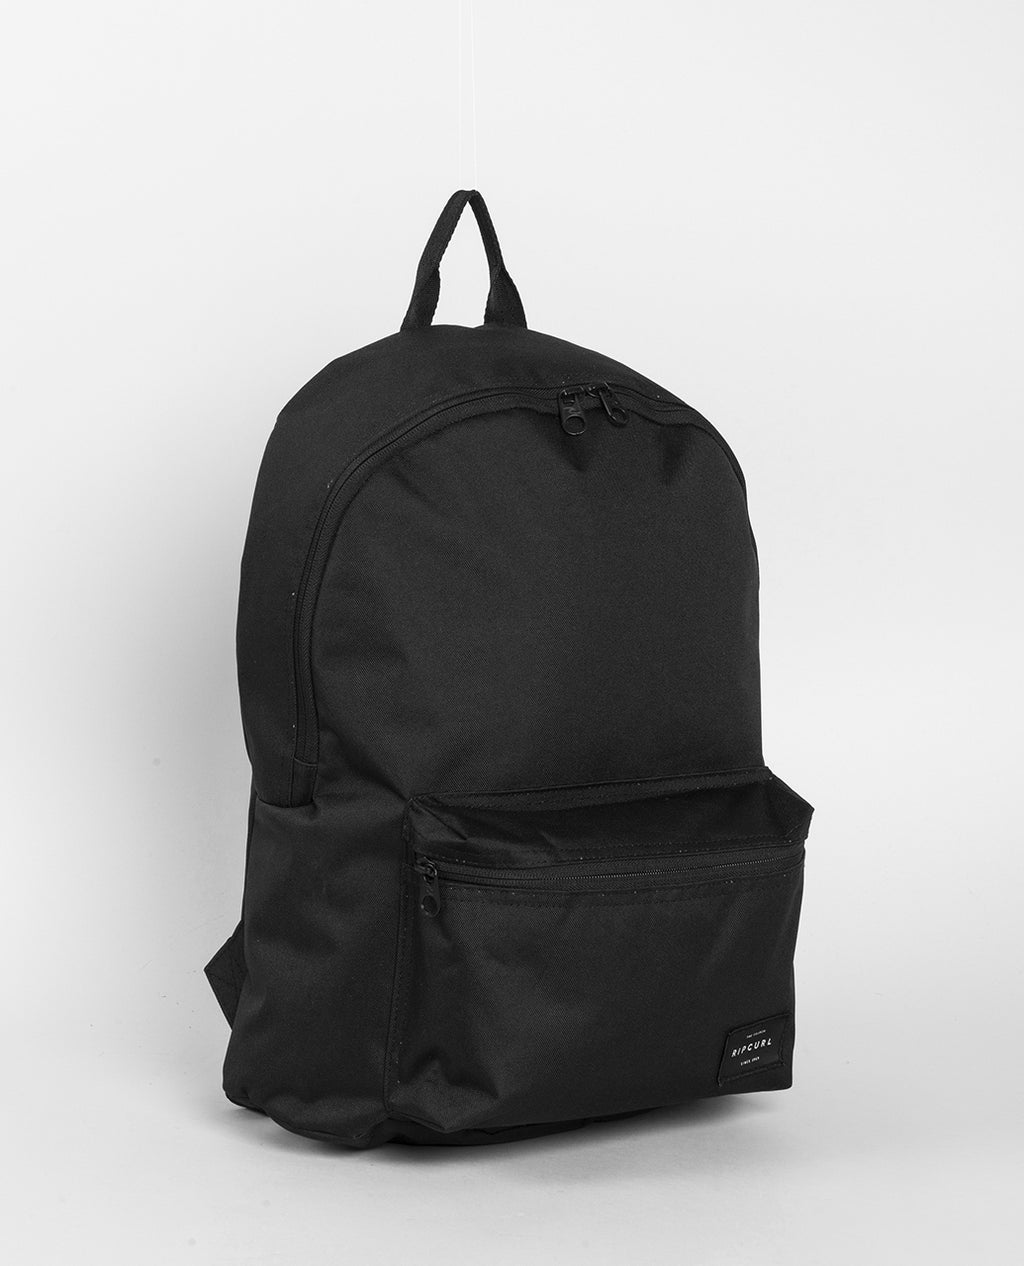 DOME PRO 18L BACKPACK BBPVP4